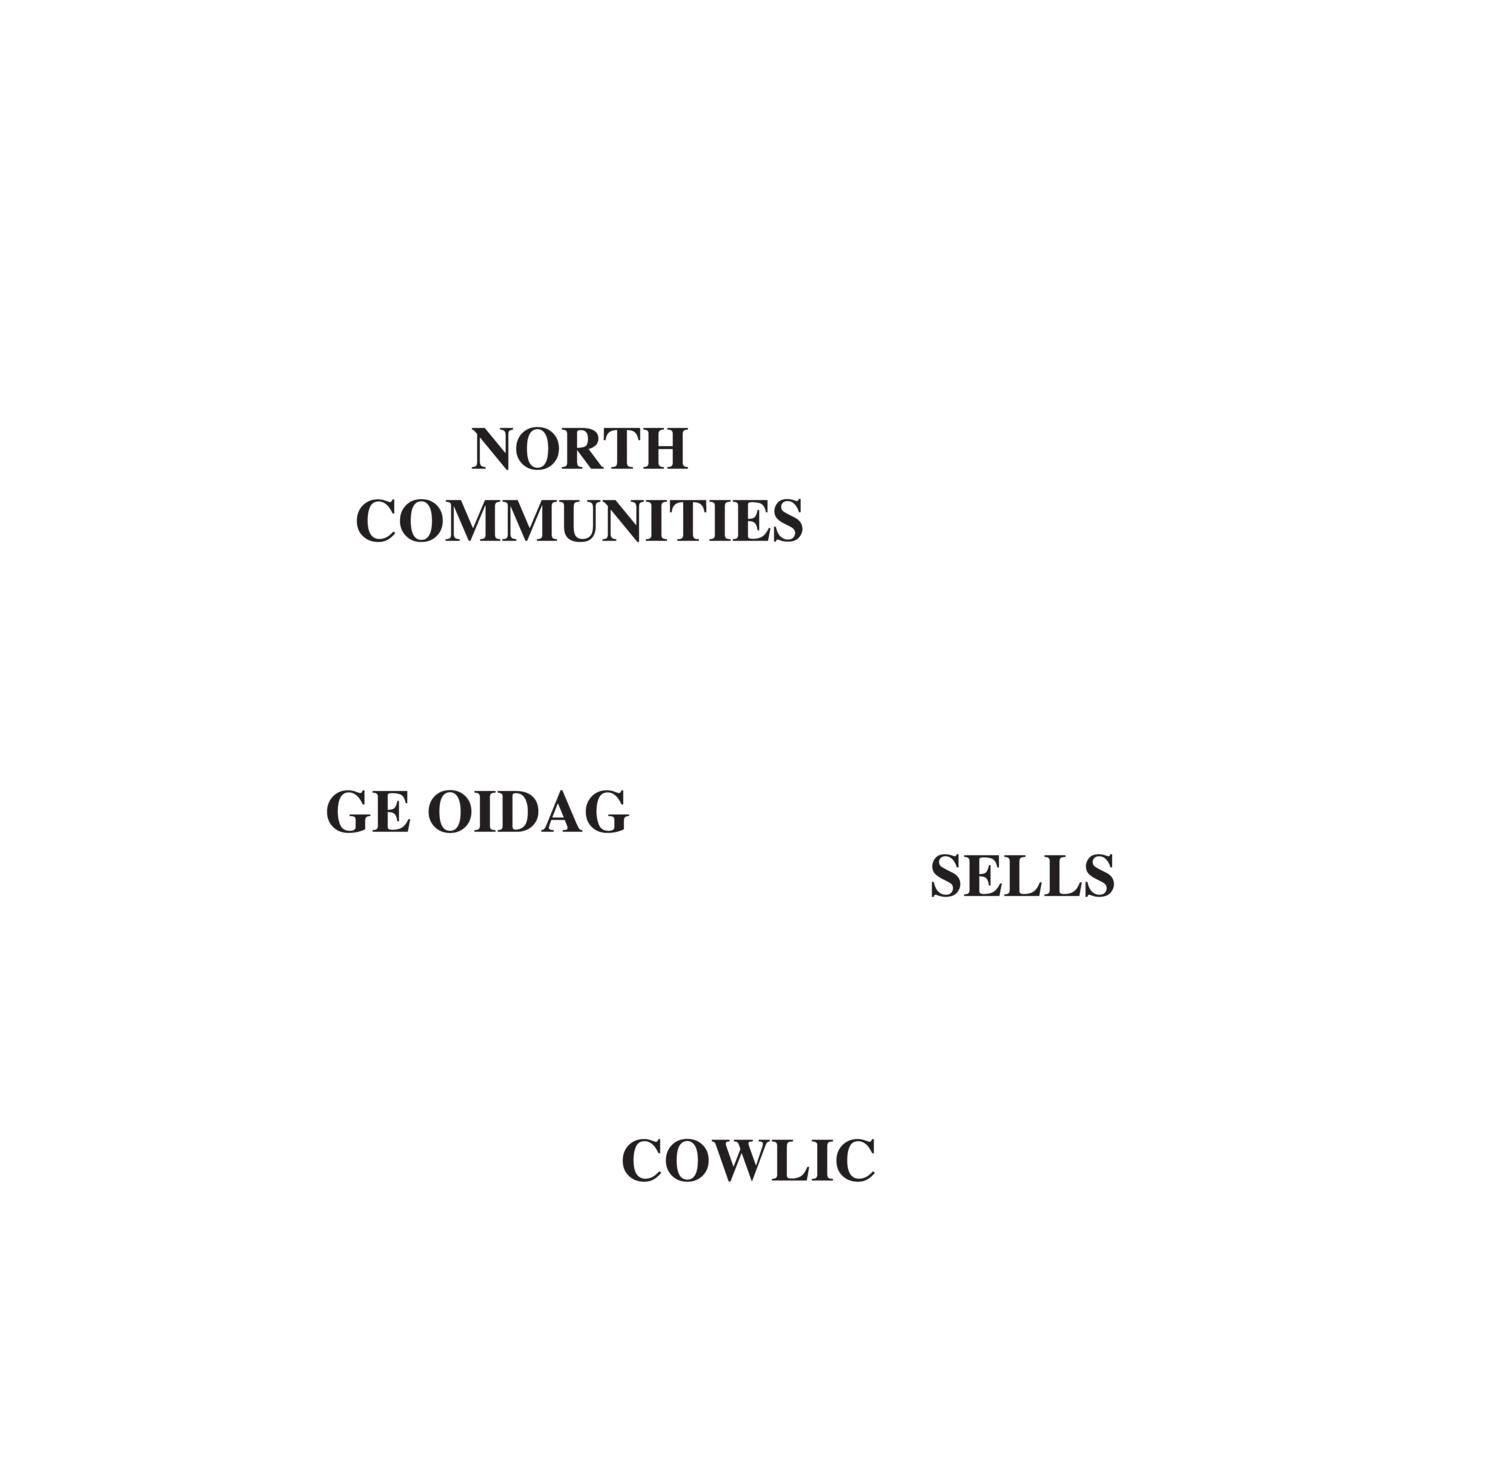 Sells District